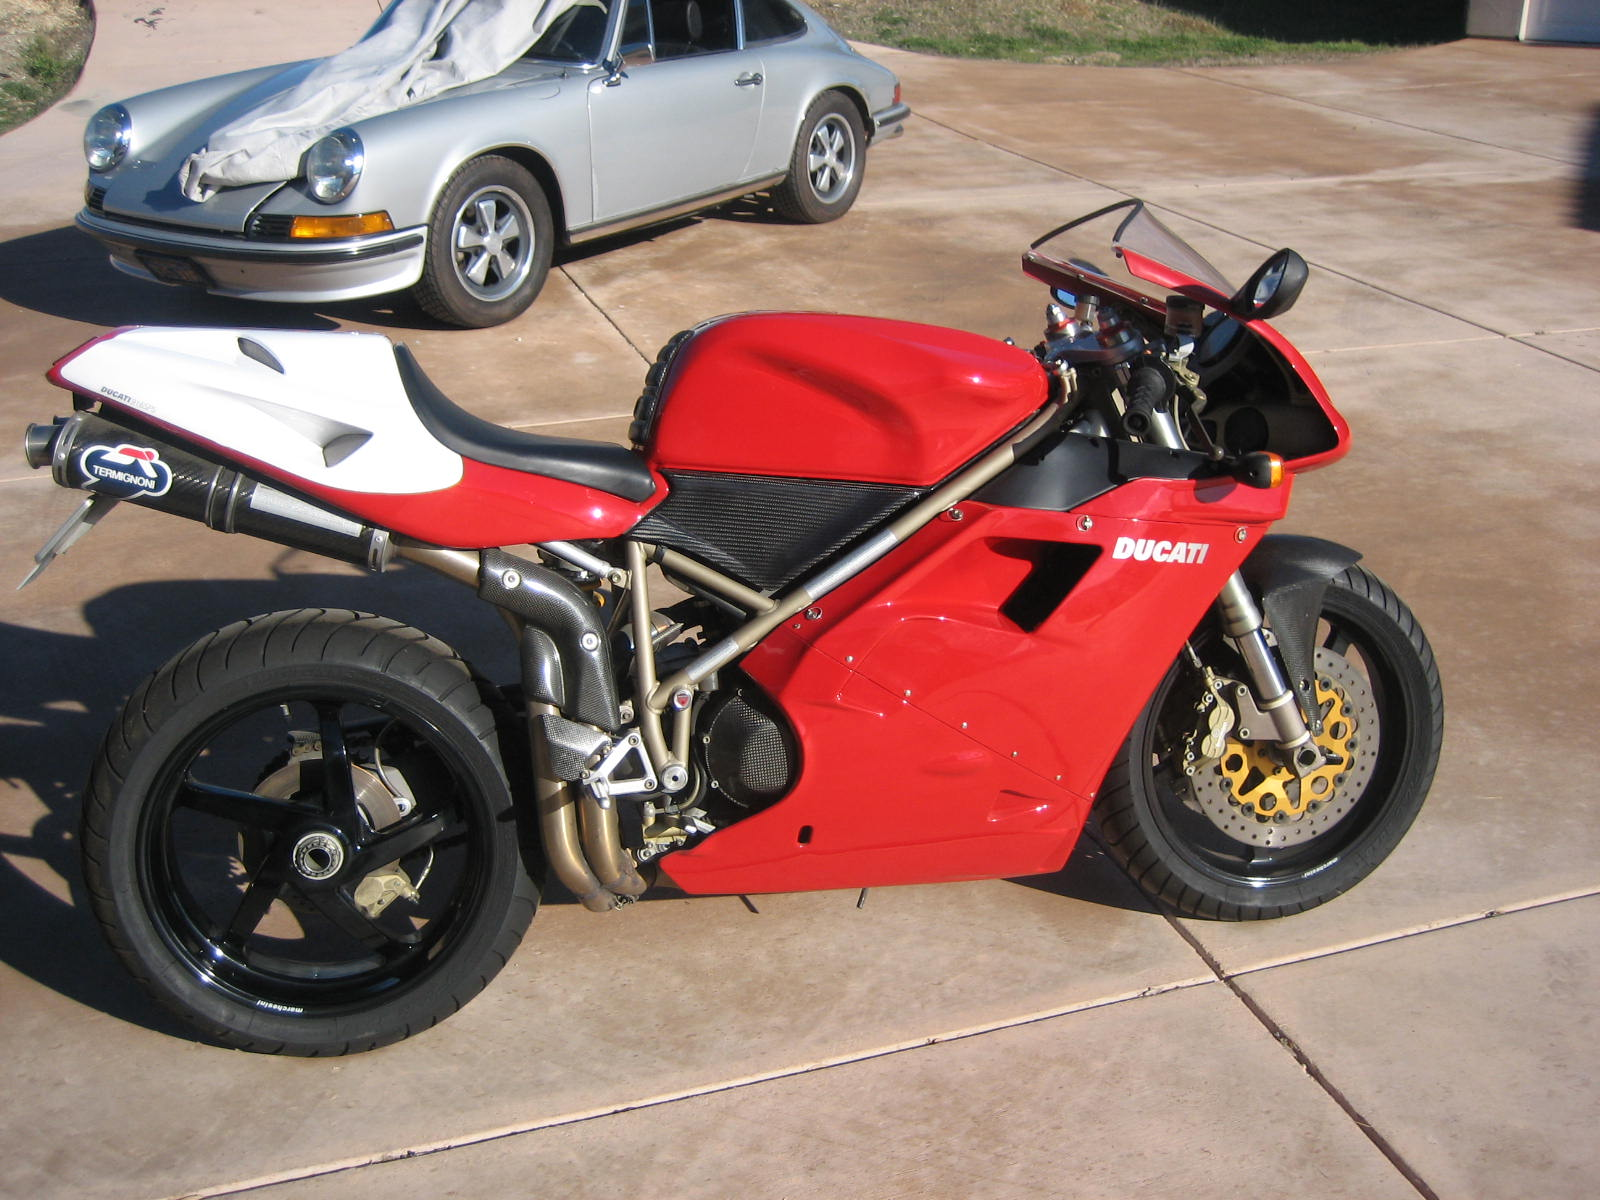 916 sps archives - rare sportbikes for sale